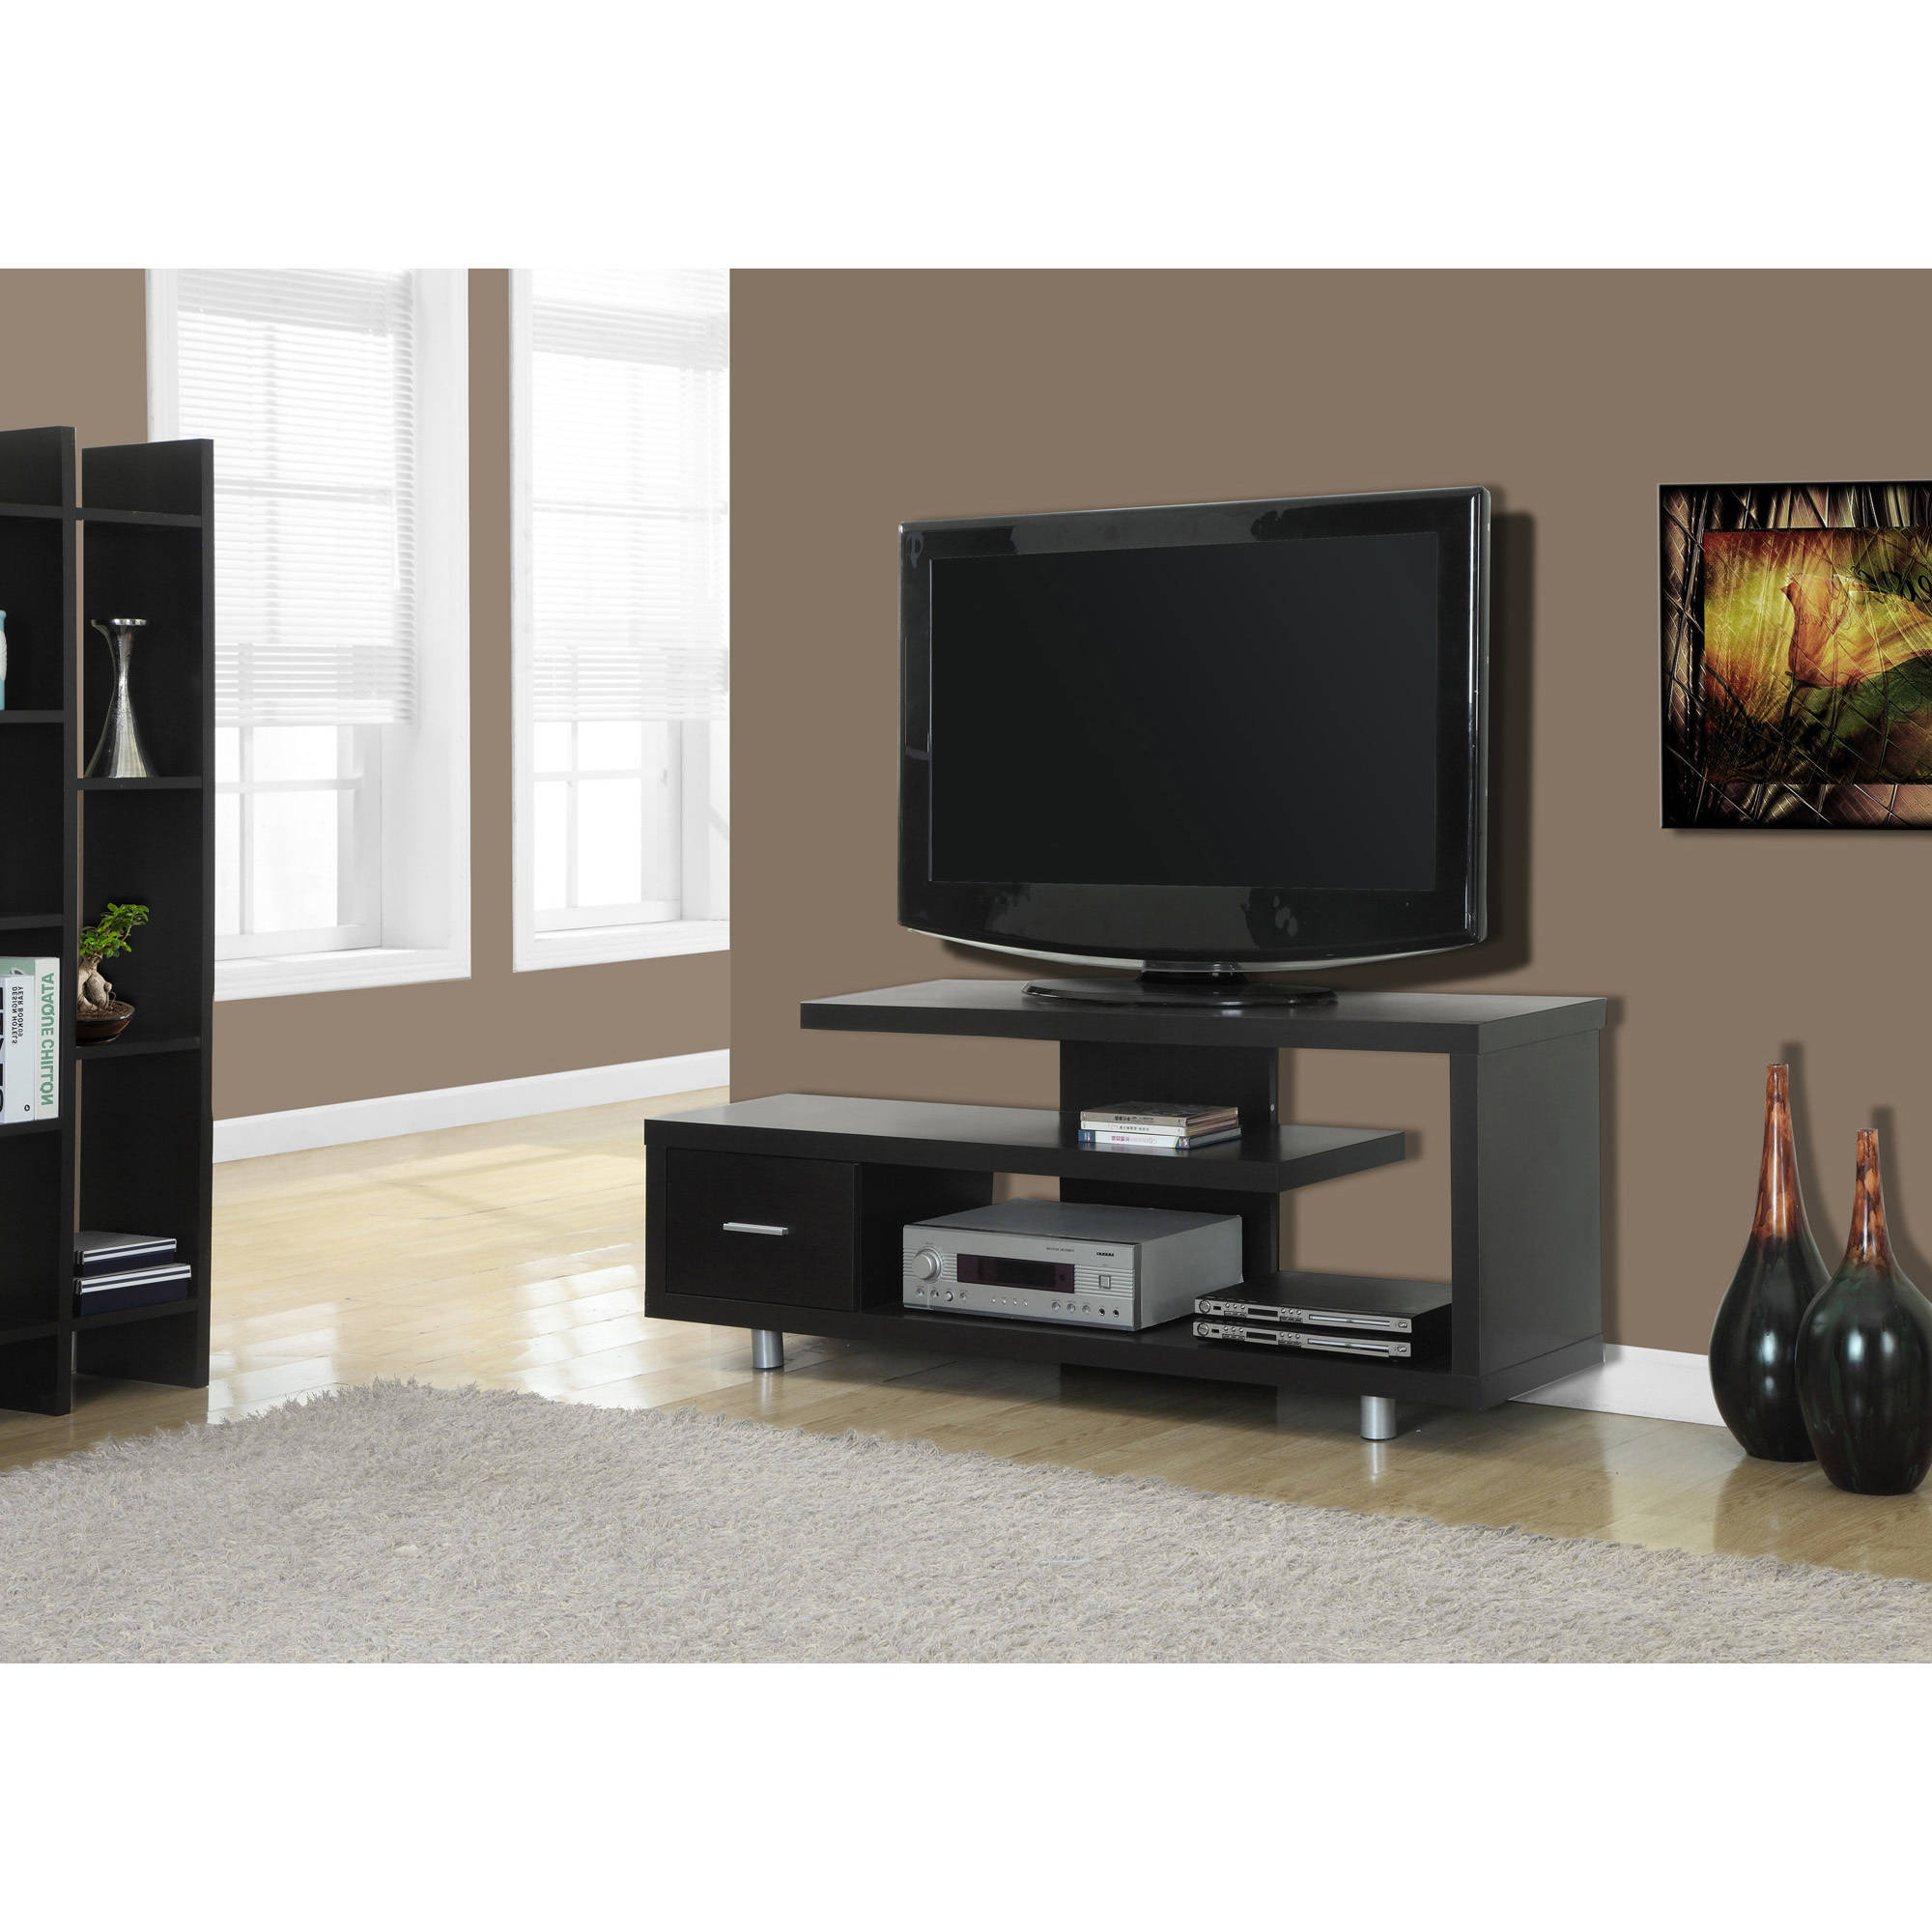 "Maddy 60 Inch Tv Stands Intended For Most Recent Monarch Tv Stand White With 1 Drawer For Tvs Up To 47""l – Walmart (Gallery 5 of 20)"